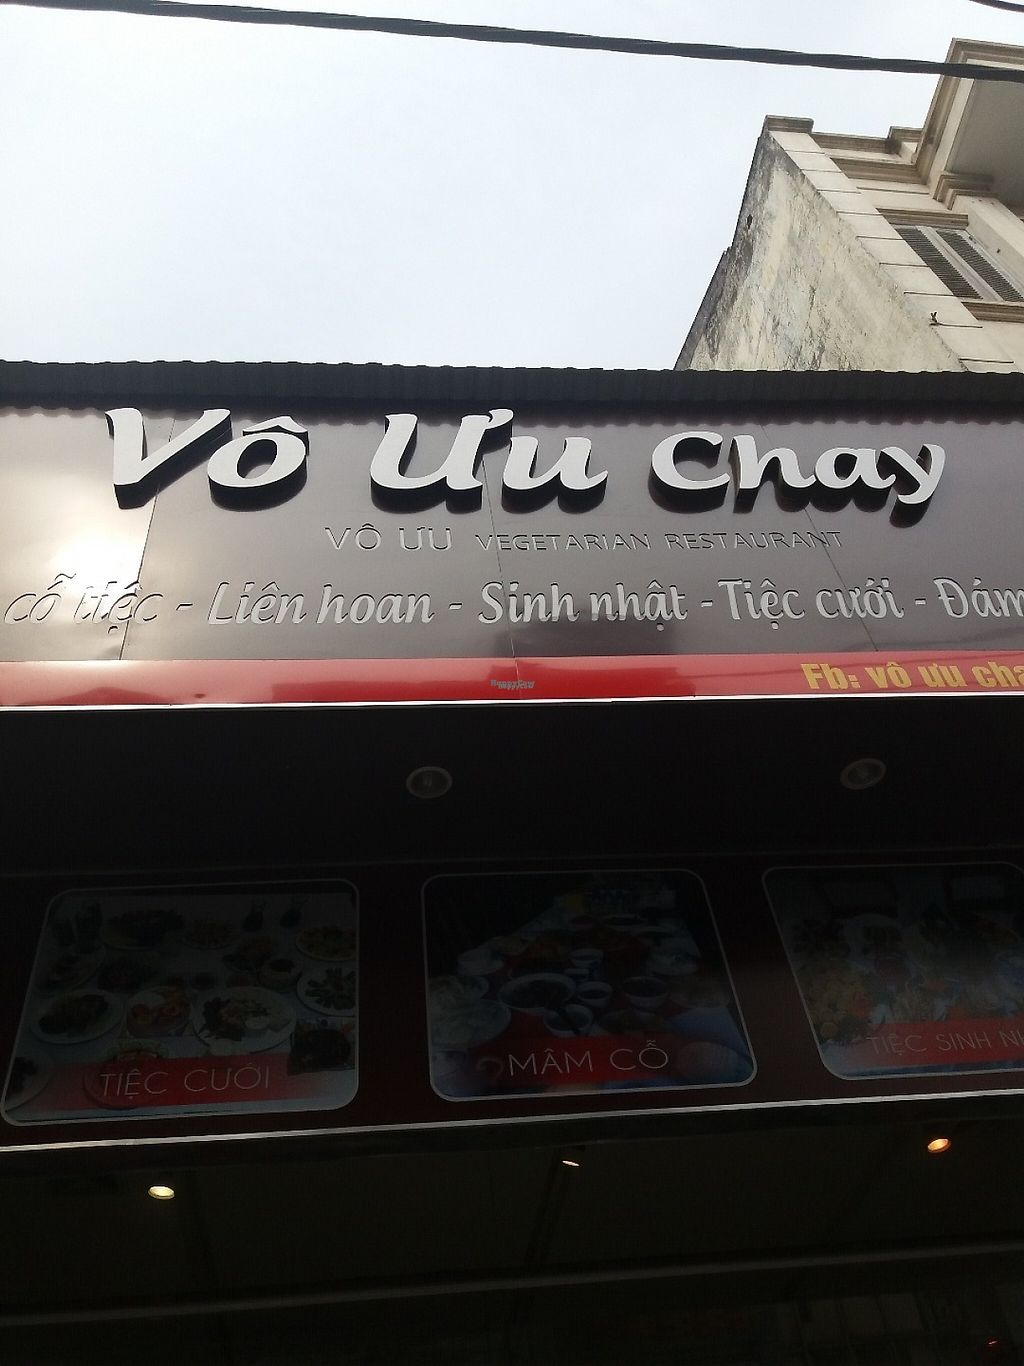 """Photo of Vo Uu Chay  by <a href=""""/members/profile/veganvirtues"""">veganvirtues</a> <br/>New one on Doi Can 205 <br/> February 11, 2017  - <a href='/contact/abuse/image/86891/225191'>Report</a>"""